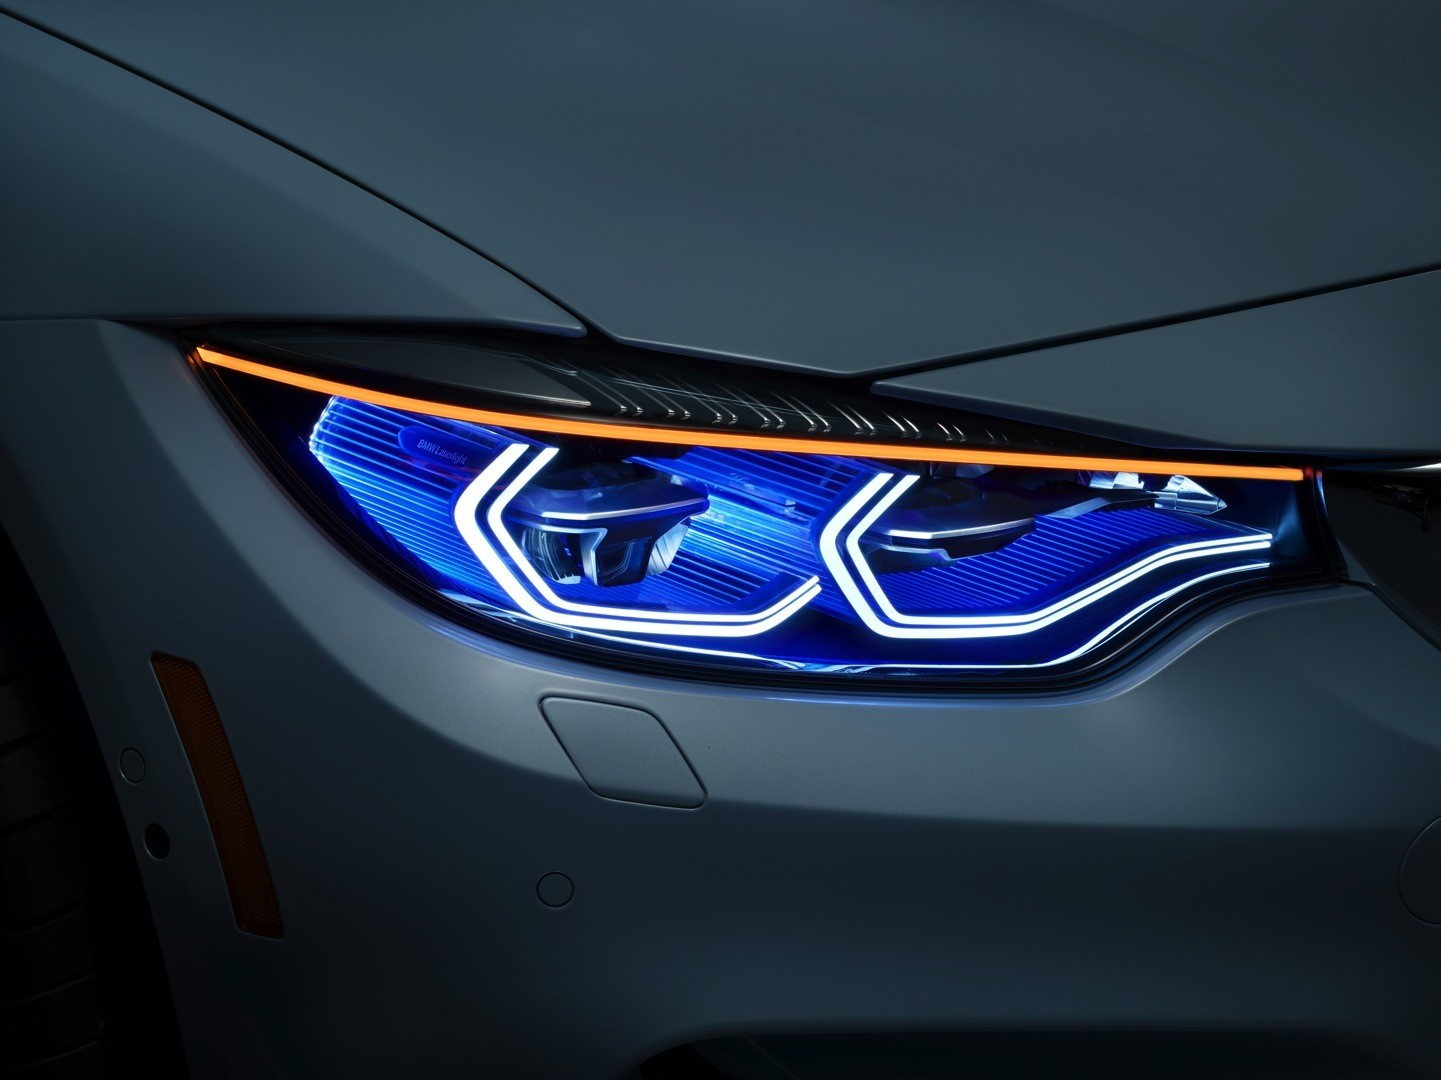 bmw-m4-concept-iconic-lights-brings-intelligent-laser-beams-and-oleds-at-ces-photo-gallery_9